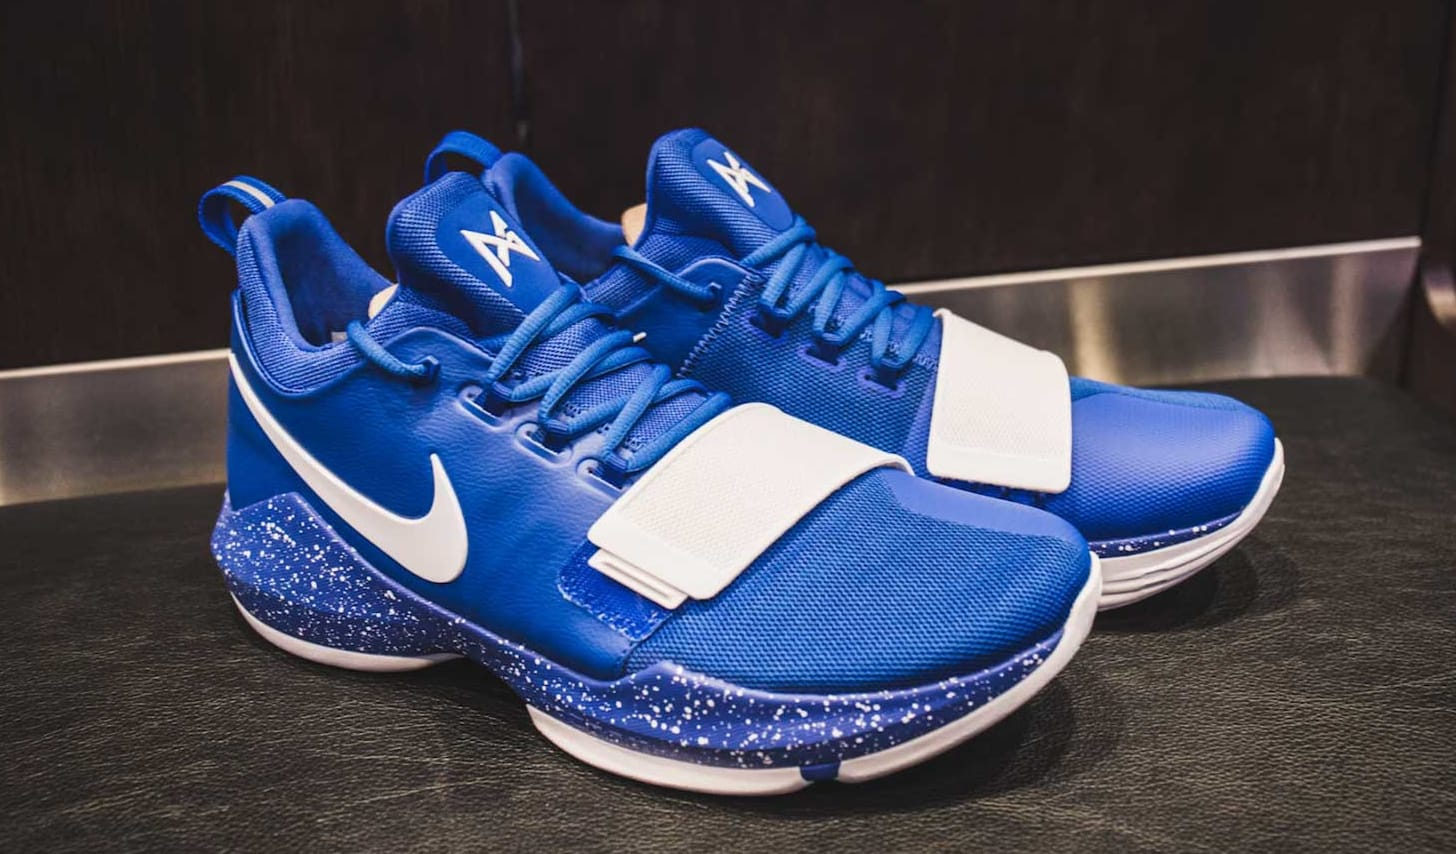 Kentucky Nike Shoes